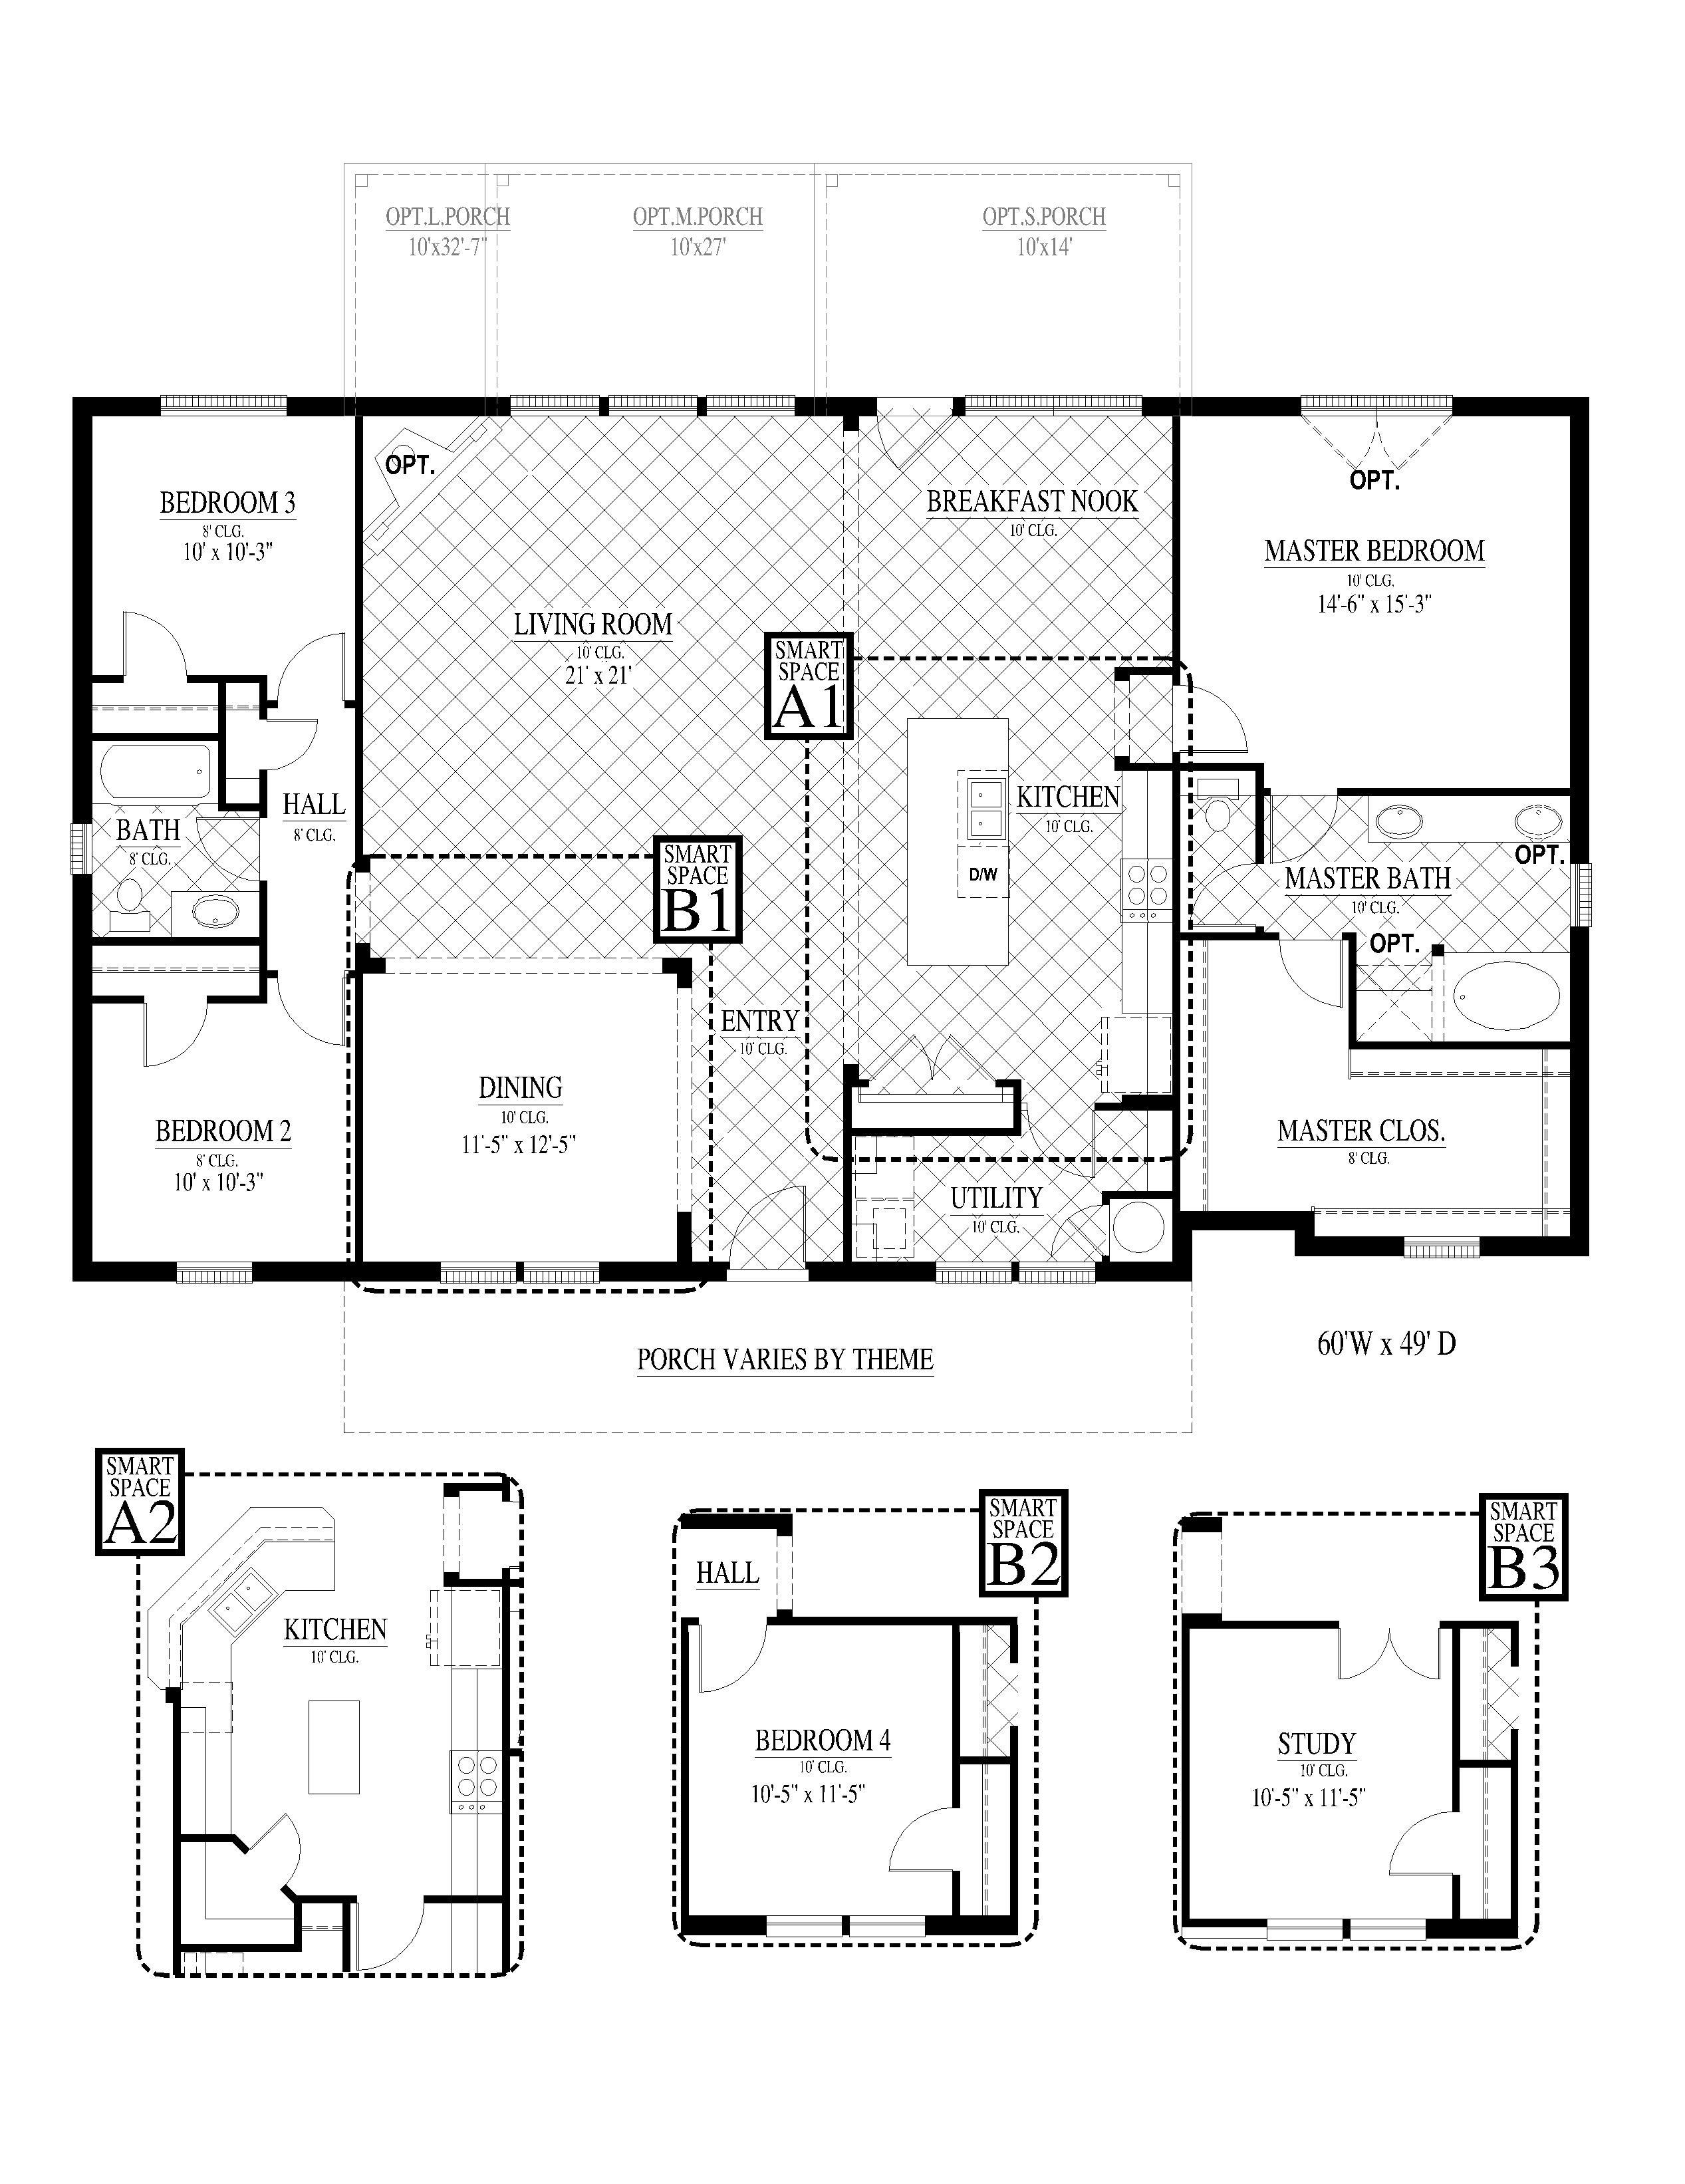 [FLEX PLAN] Fairview-II Floorplan